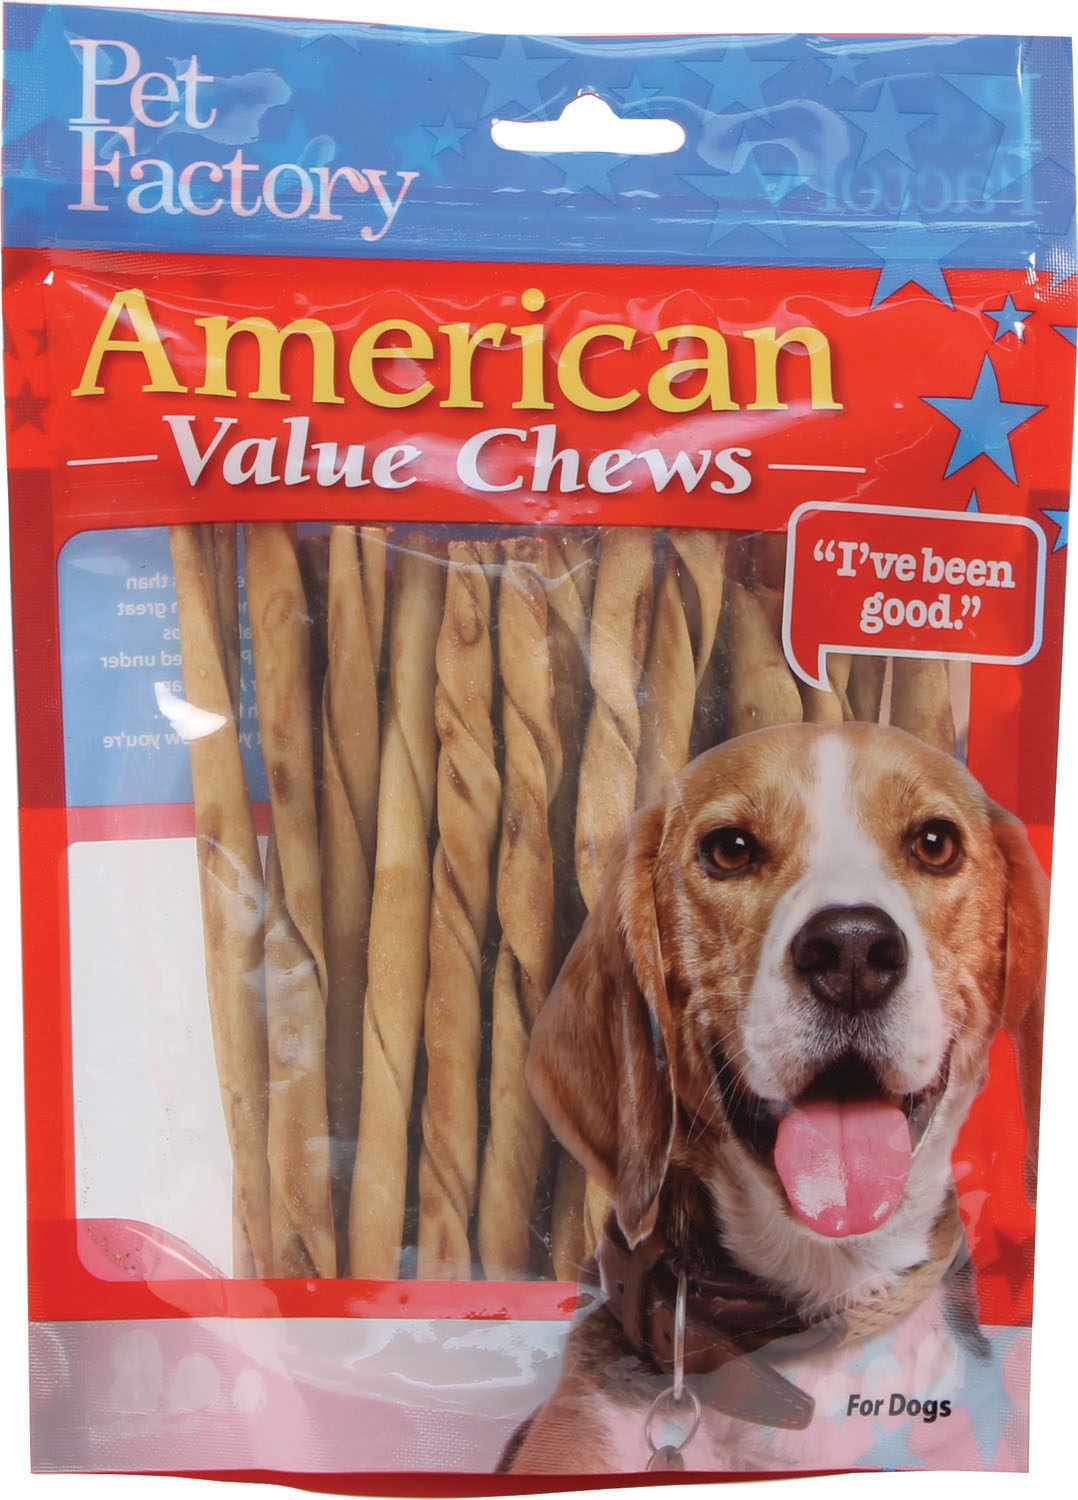 Pet Factory American Beefhide Chicken Flavored Twist Sticks Dog Treats, 5-in, 25-pk